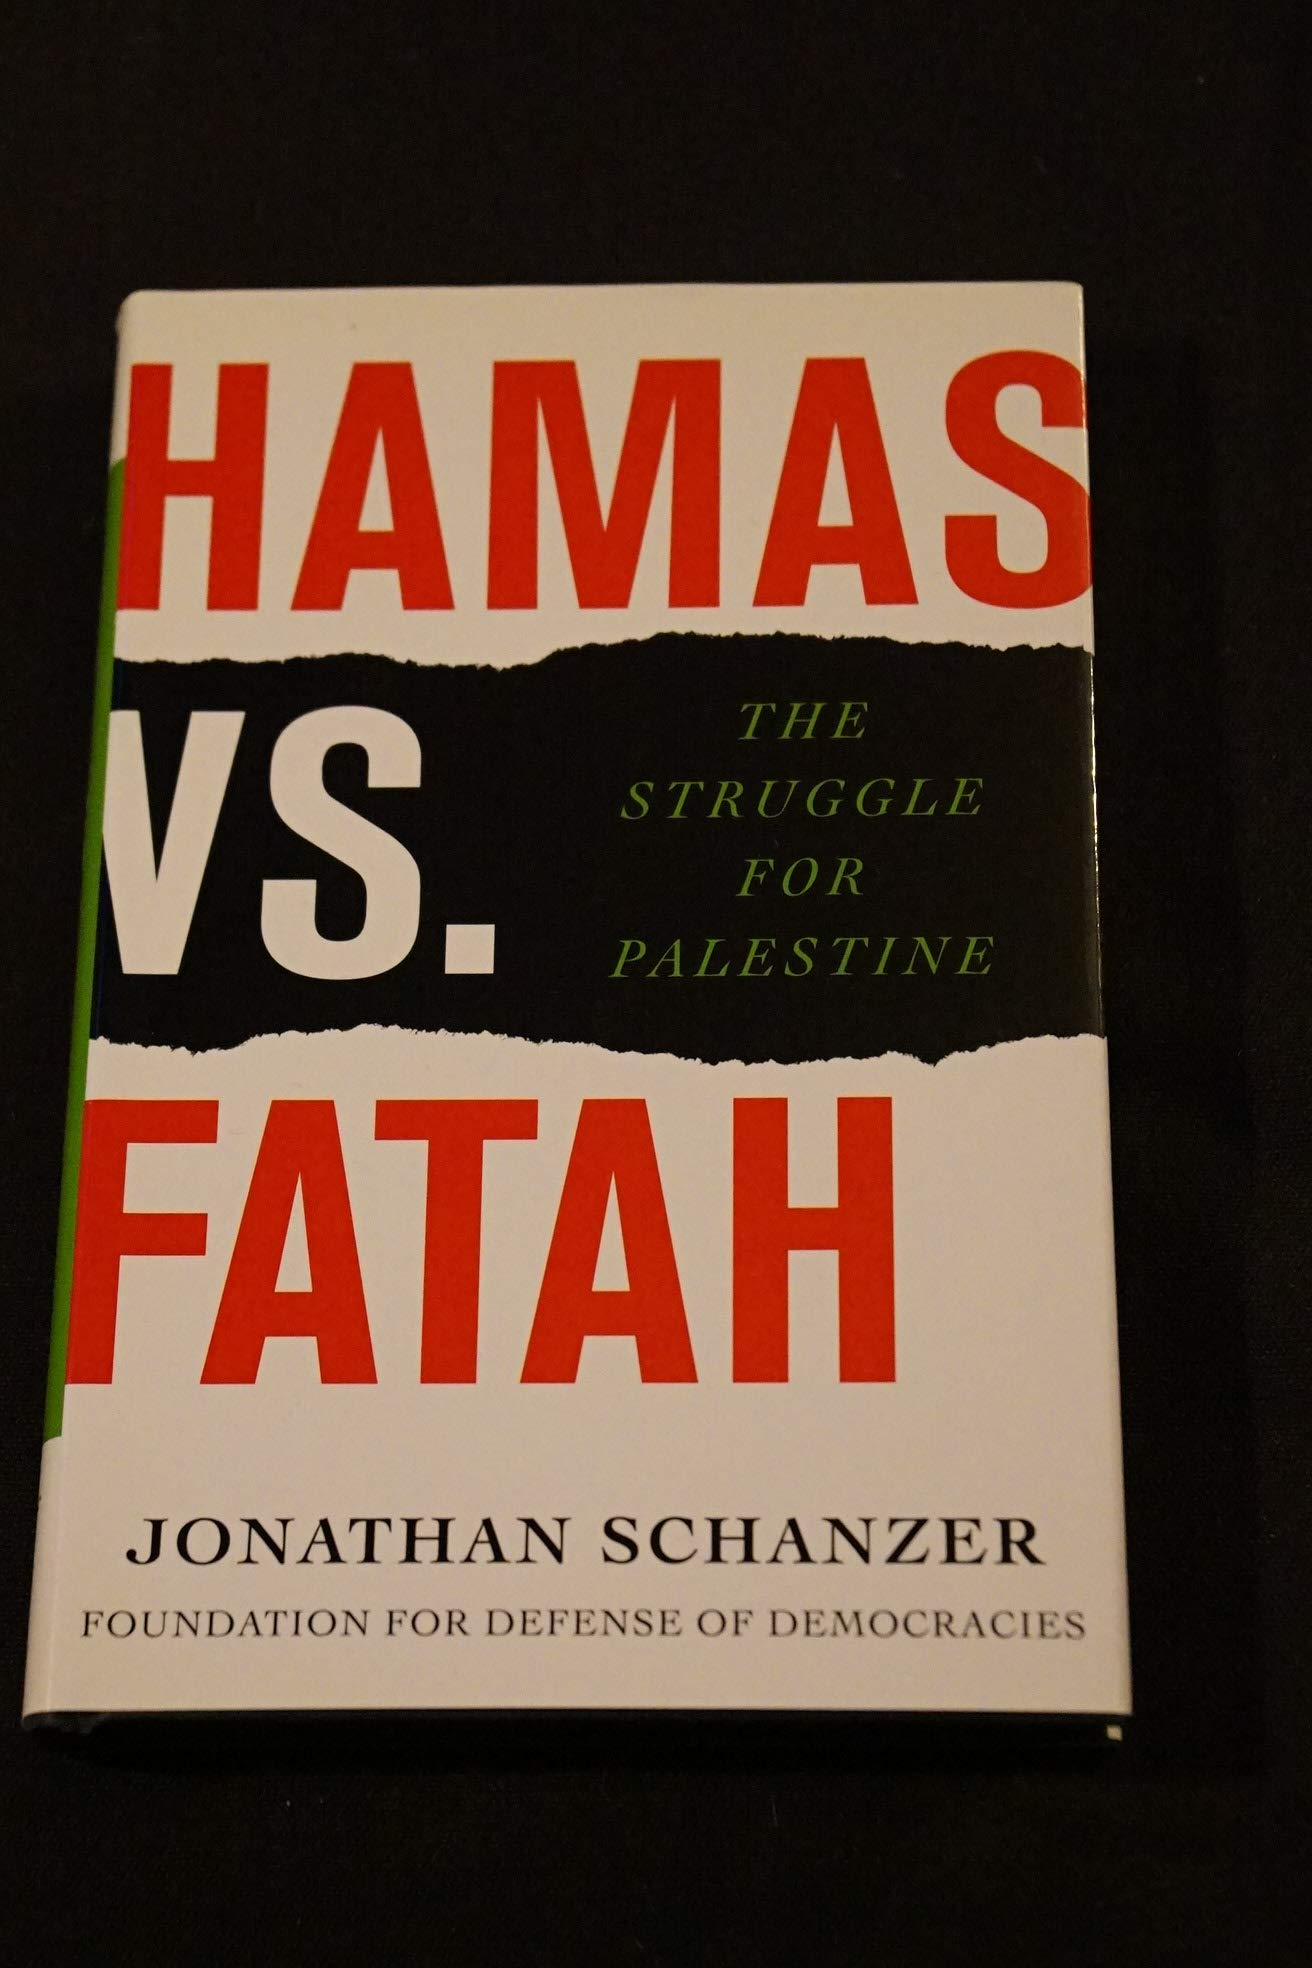 Failed States and States of Failure, Conference Call with Jonathan Schanzer